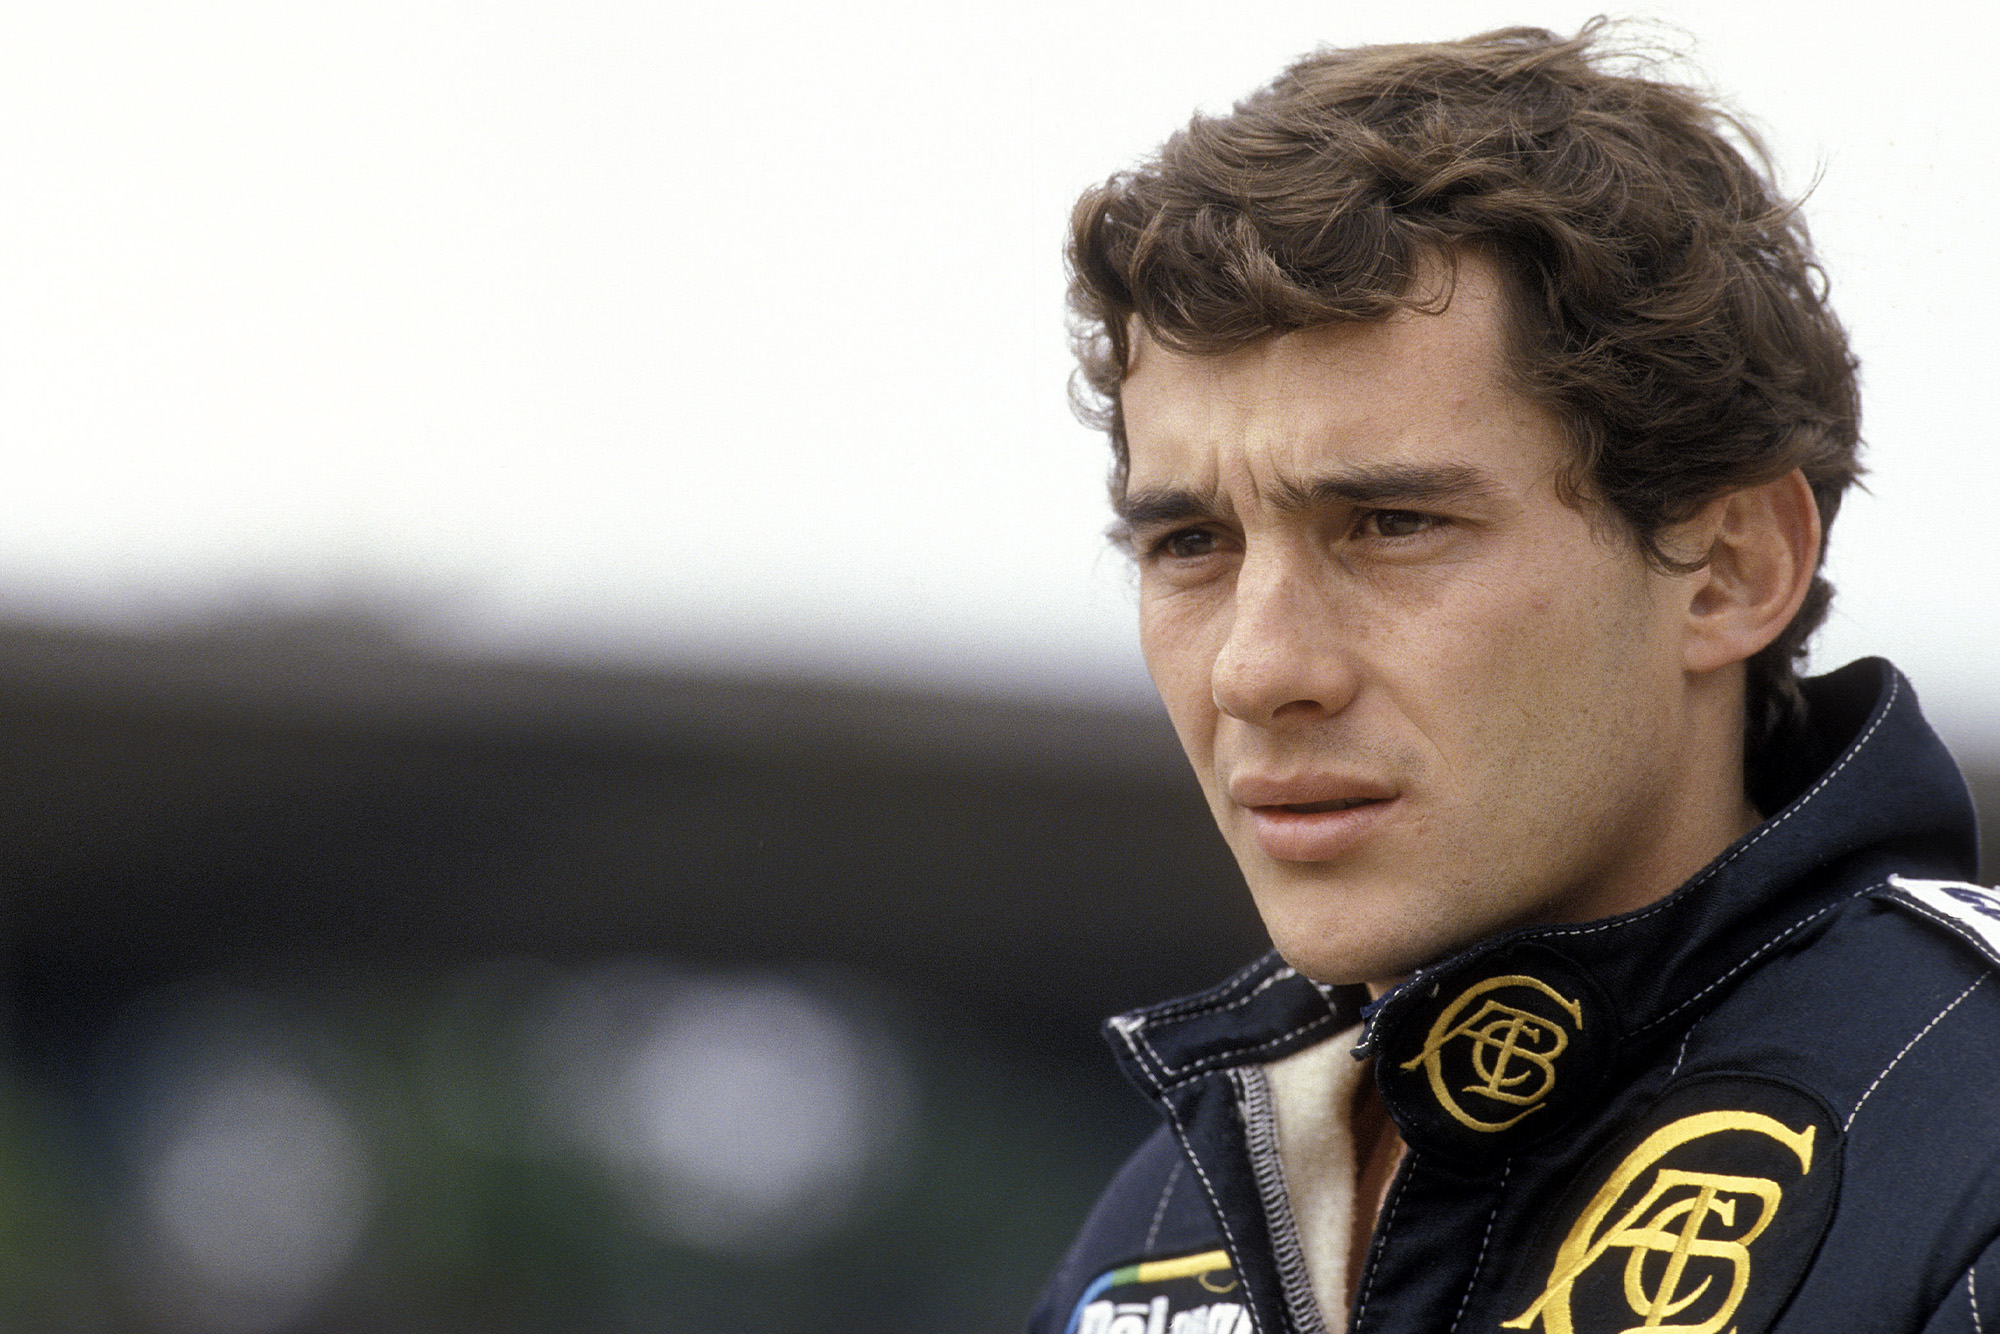 Ayrton Senna tried his hand at rallying for a weekend